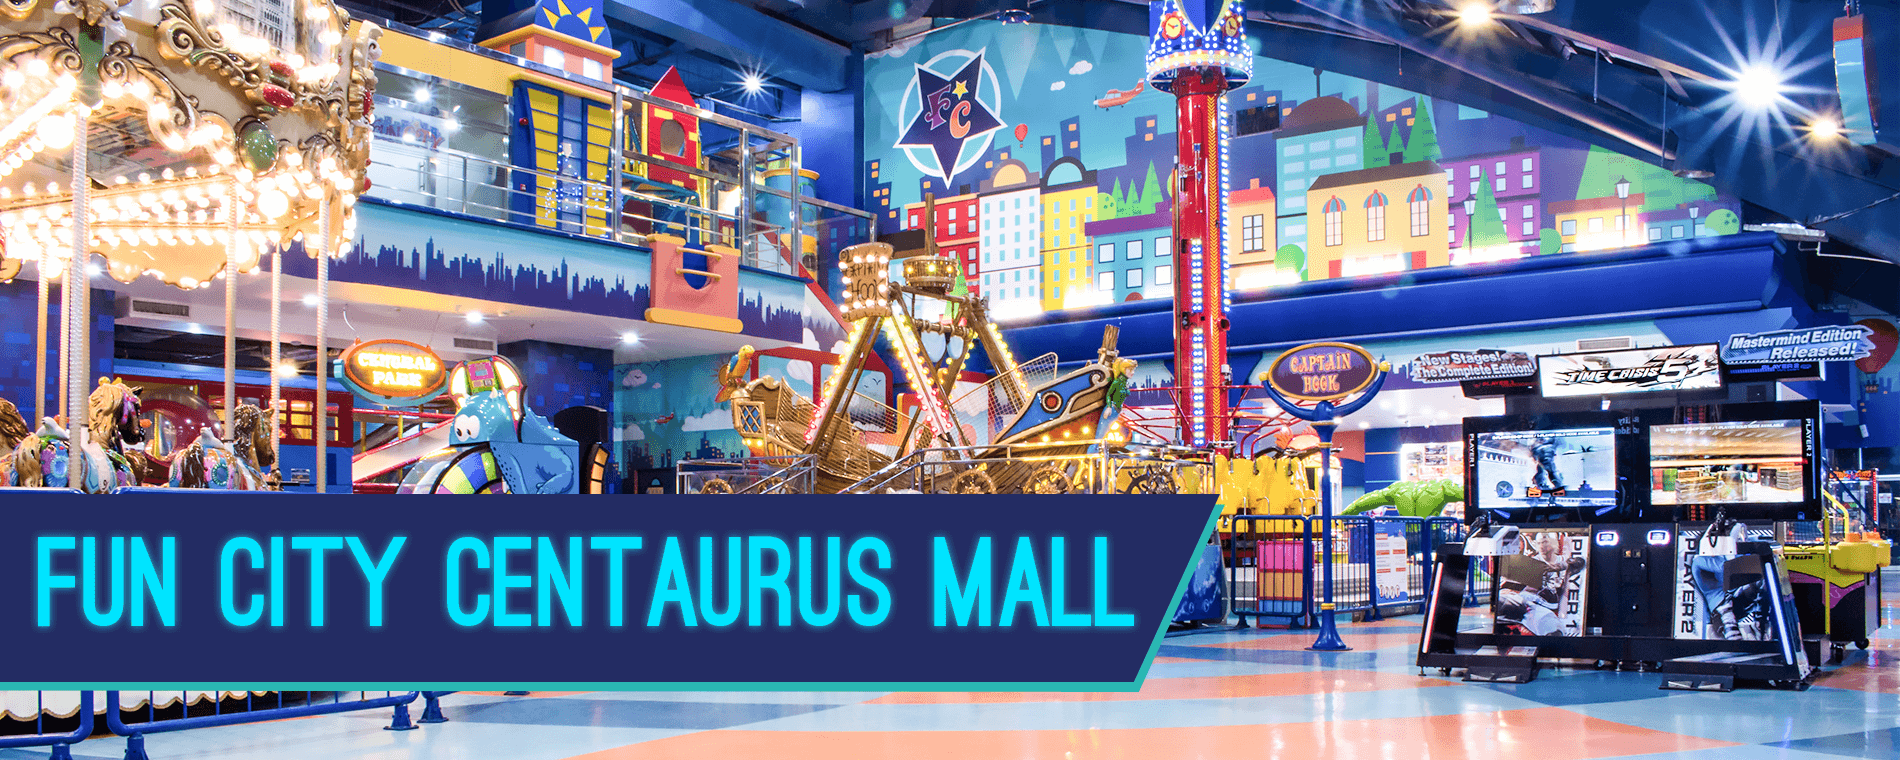 Fun-City-Centaurus-Mall